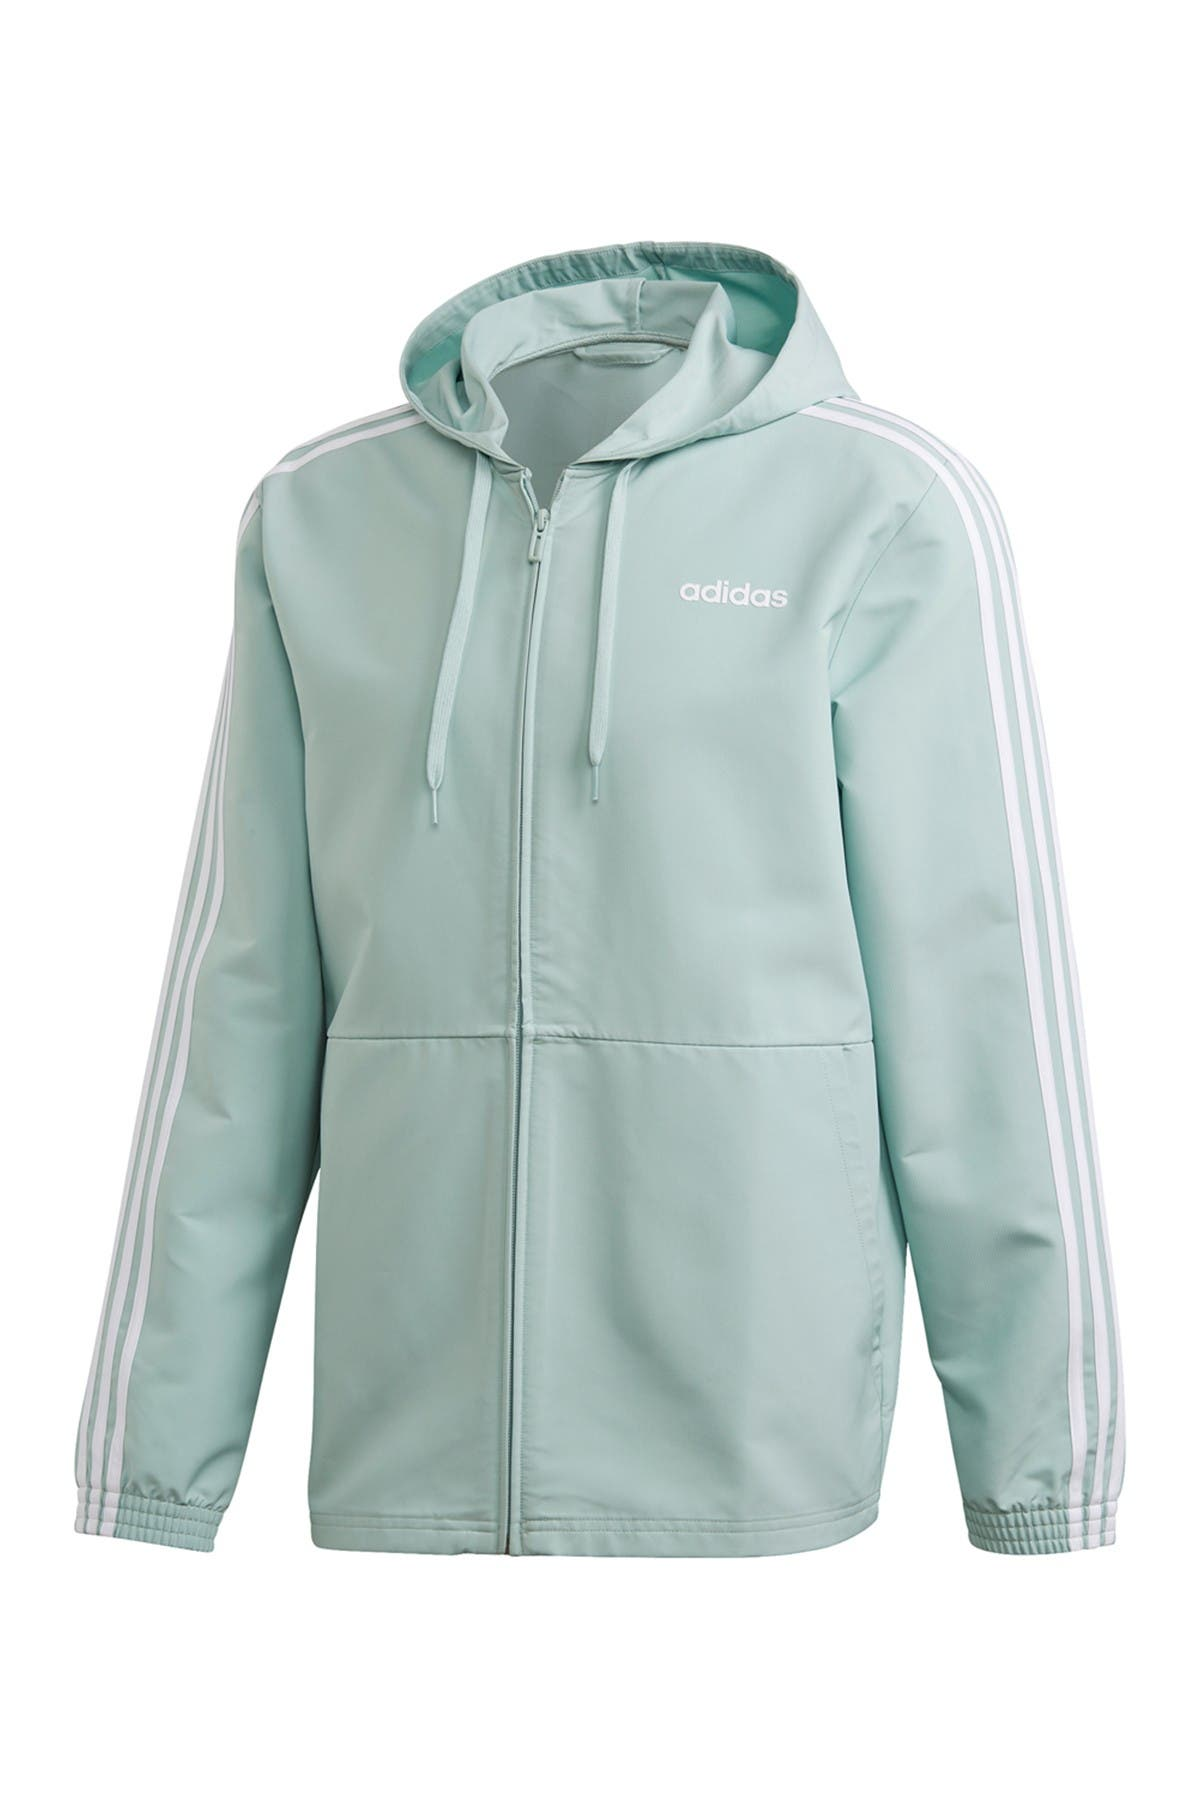 Image of adidas Essentials 3-Stripes Windbreaker